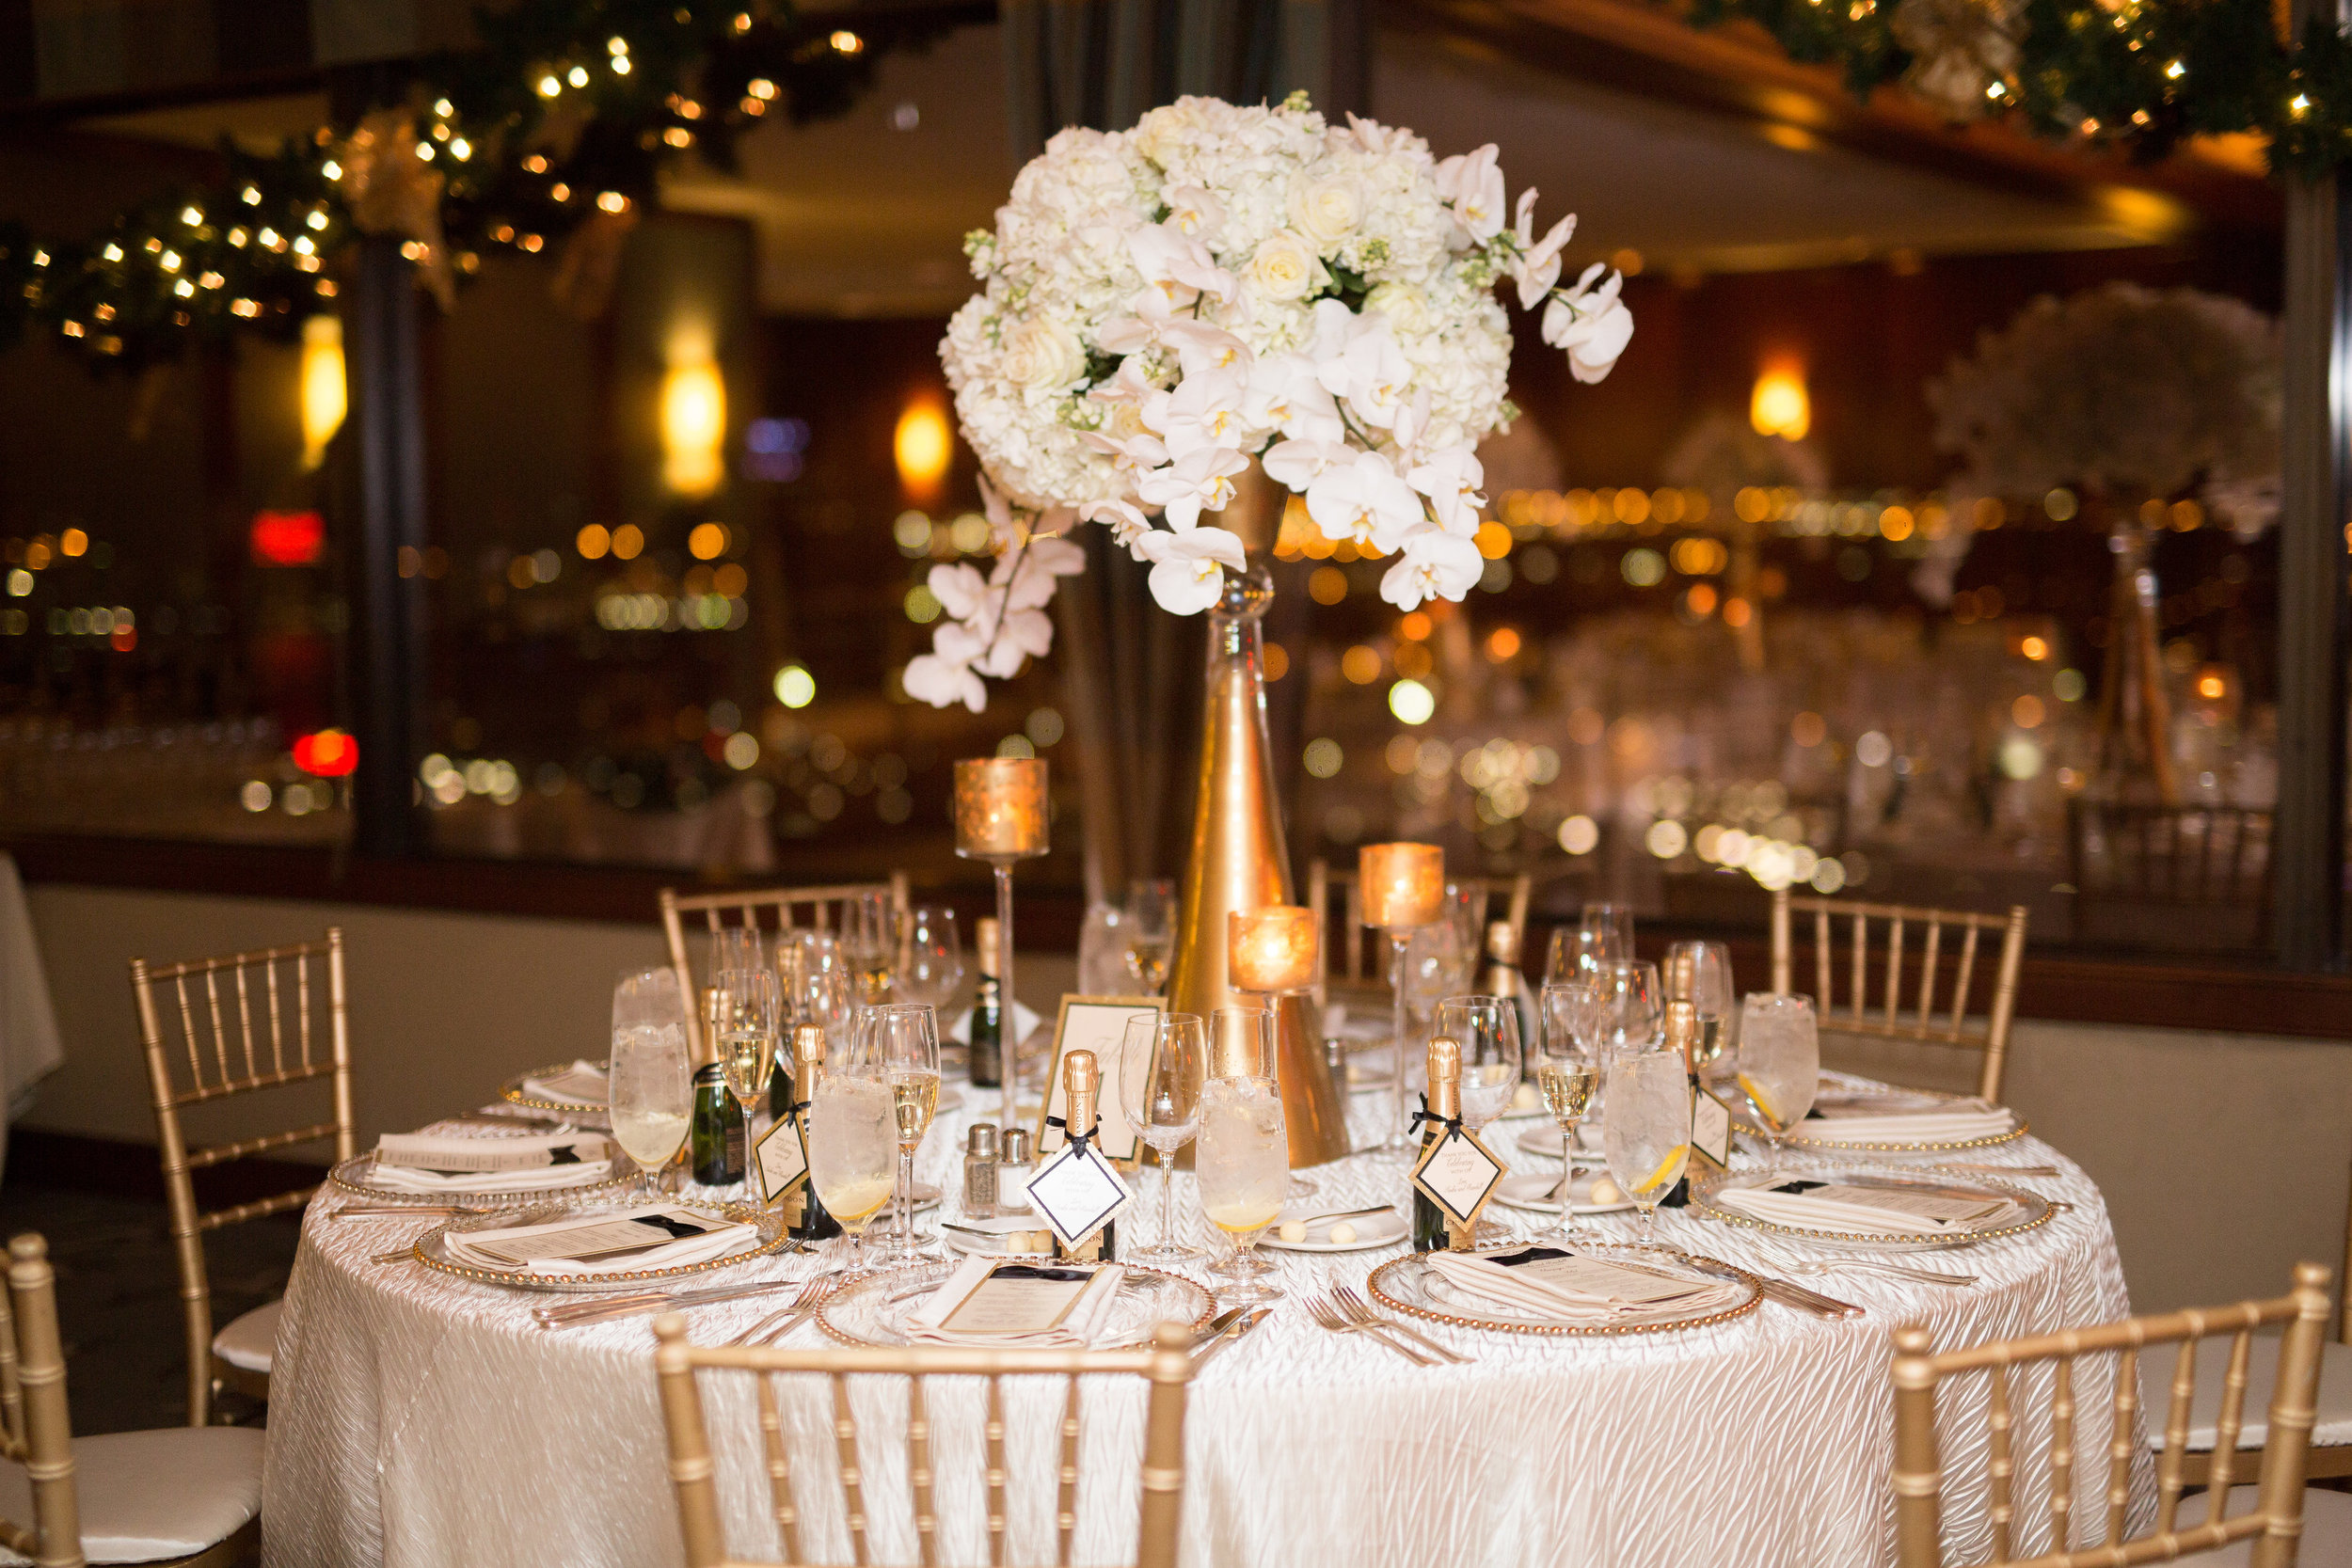 Center Club Wedding by East Made Event Company Baltimore Maryland Fine Art Wedding Planner and Focus Bay Photography387.jpg